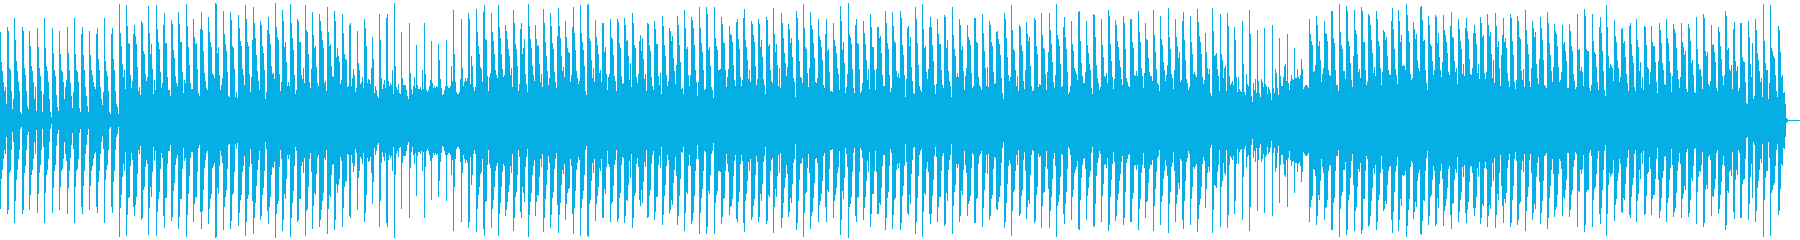 It is a good royal road techno's reproduced waveform